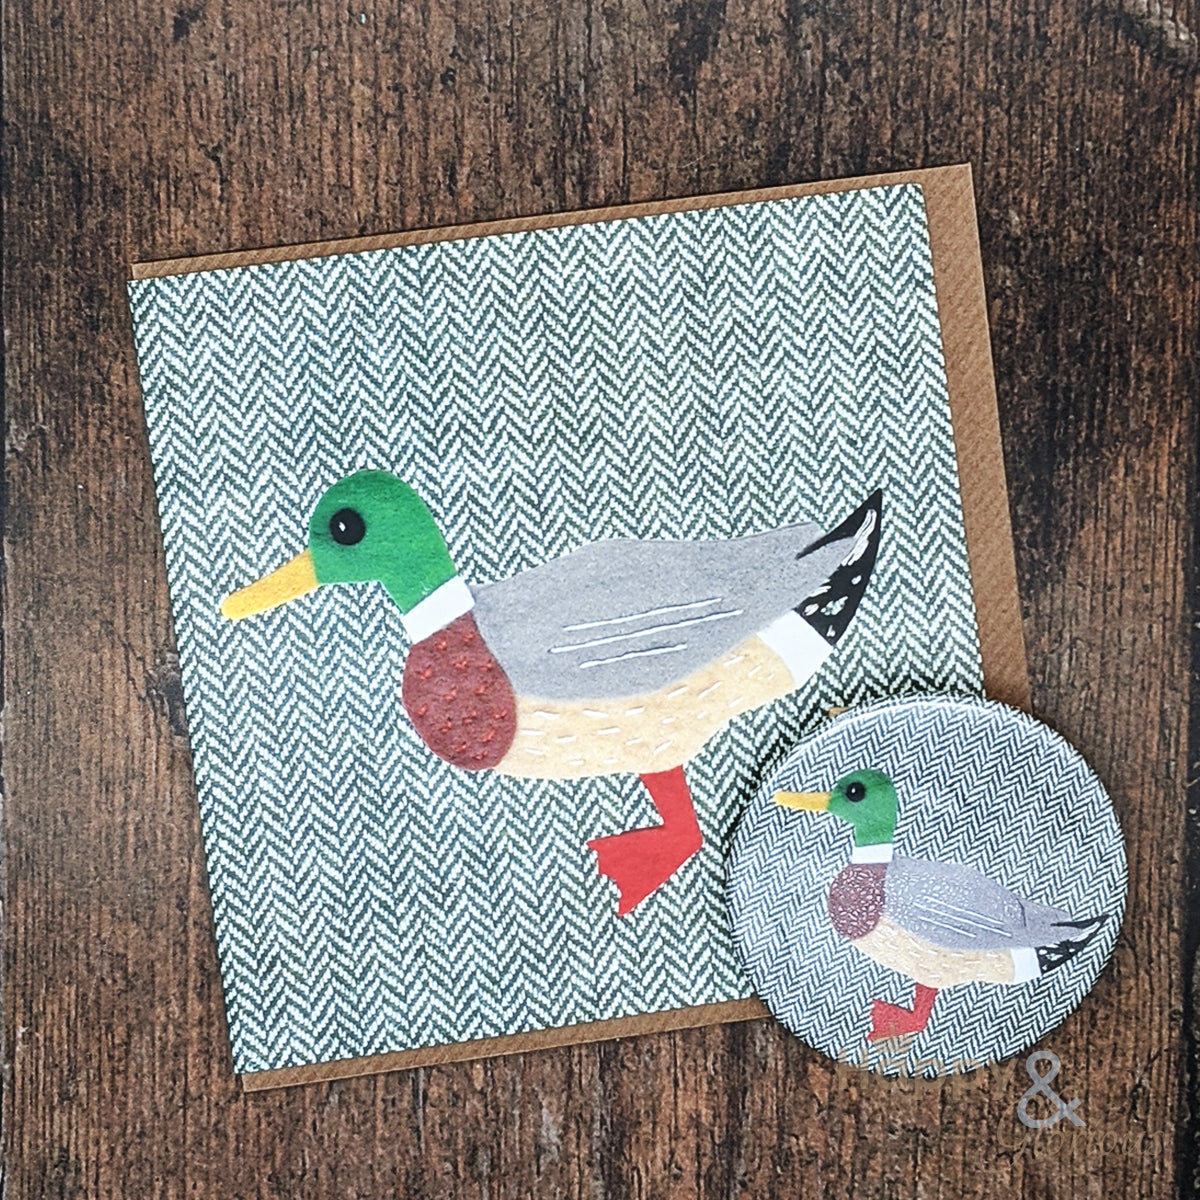 Tweedy birds duck pocket mirror & card